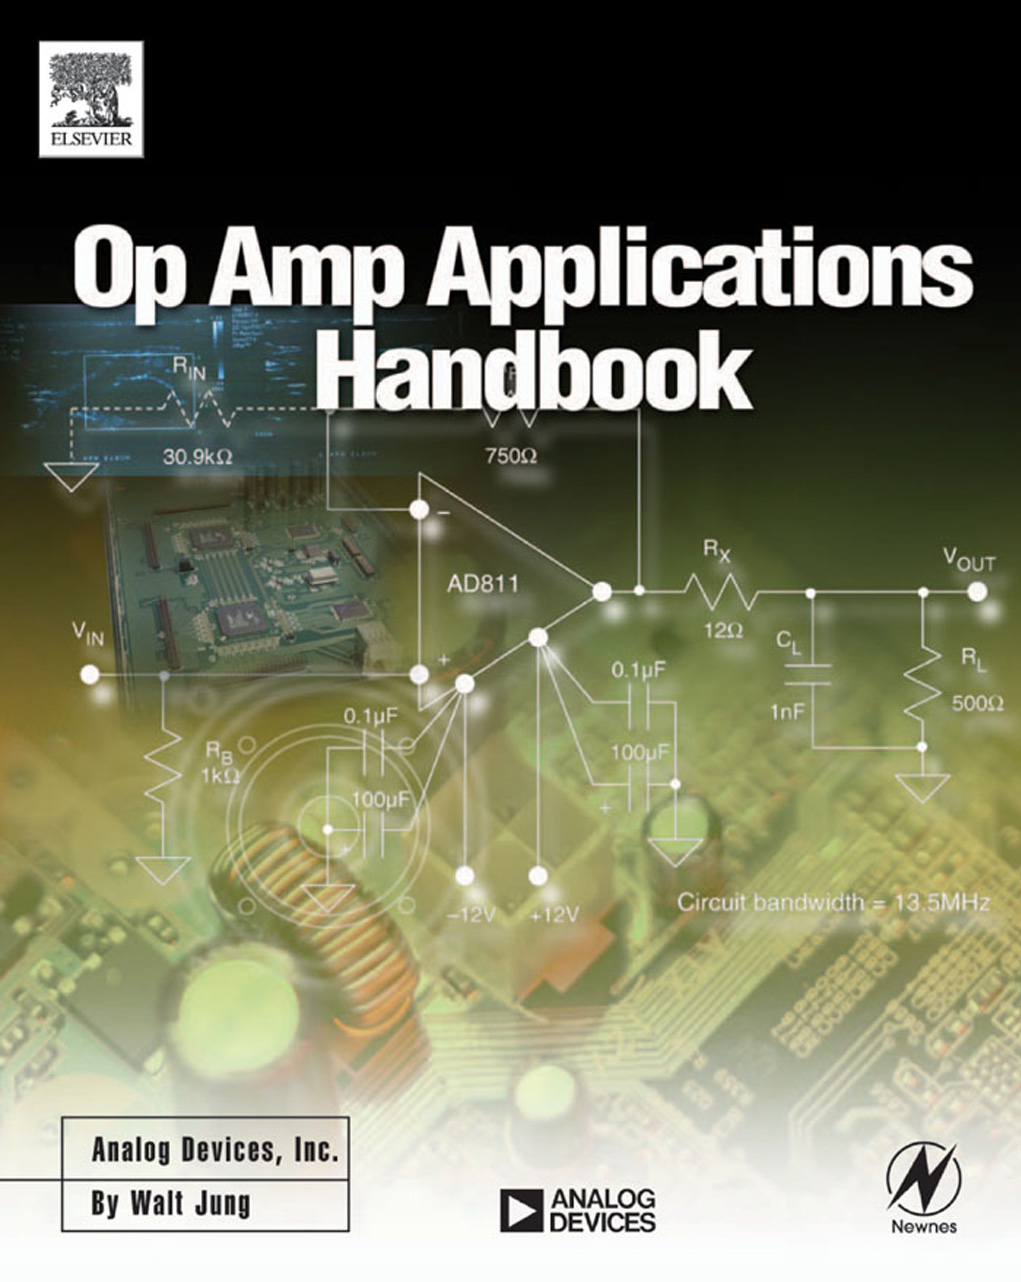 Op Amp Applications Handbook Following Circuit Diagram Show Two Comparator Circuits Using The Lm101 016273976 1 607c886f53eed2fef9551e1273233c38